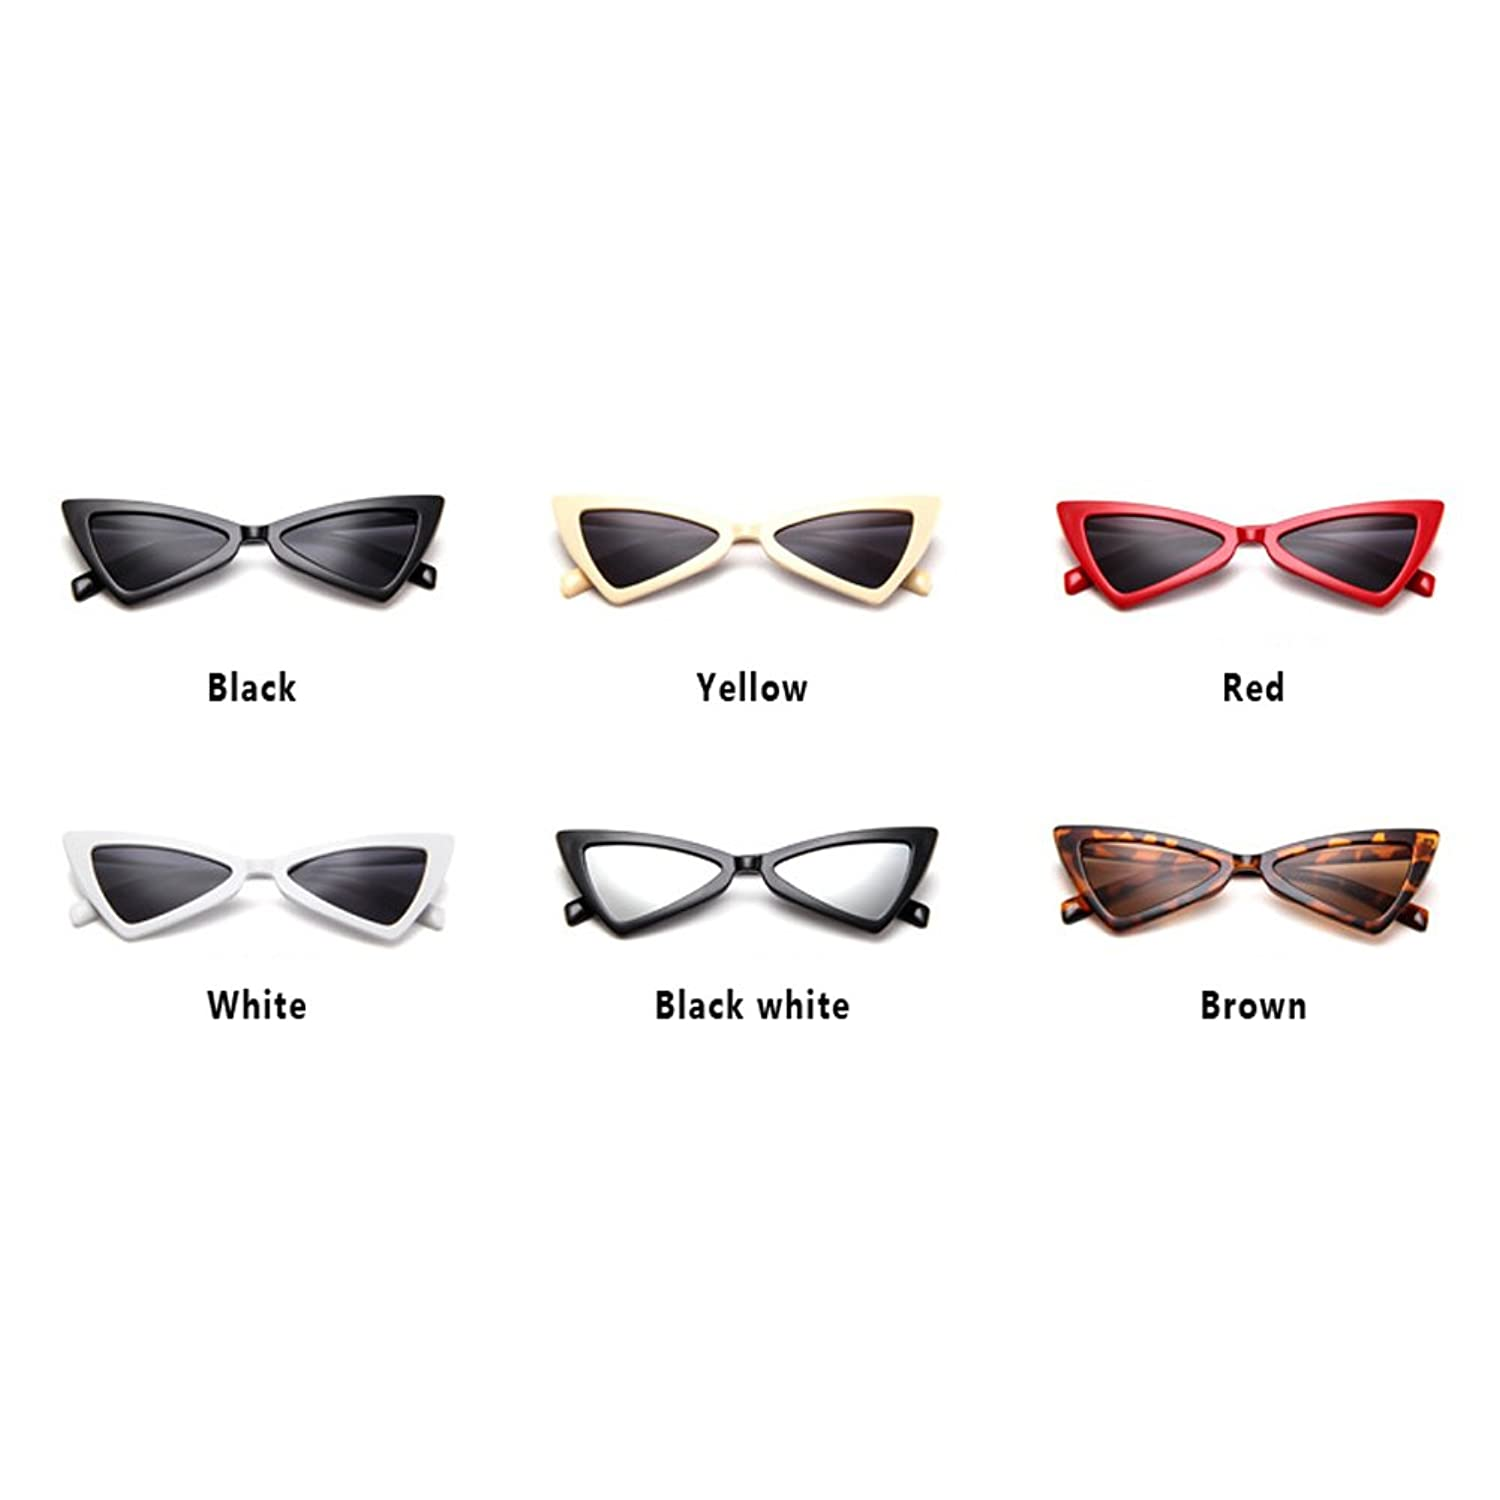 Hzjundasi MOD-Style Cat Eye Series Triangle Non-intensity Sun Glasses Retro Personality Glare-proof Glasses h2yQJgd7RW